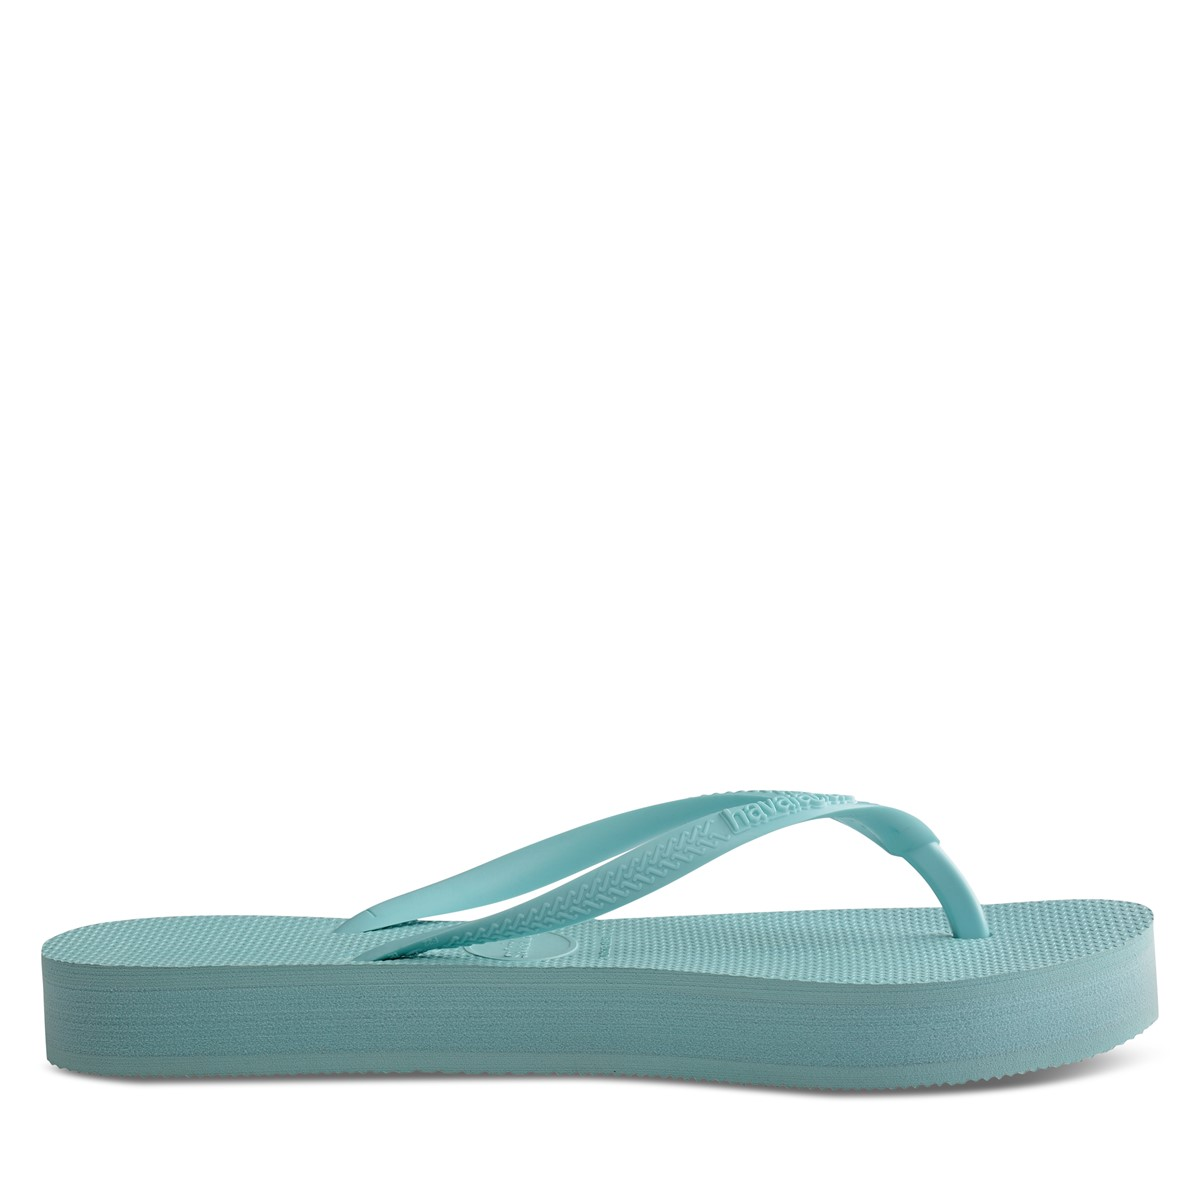 Women's Slim Flatform Sandals in Sky Blue